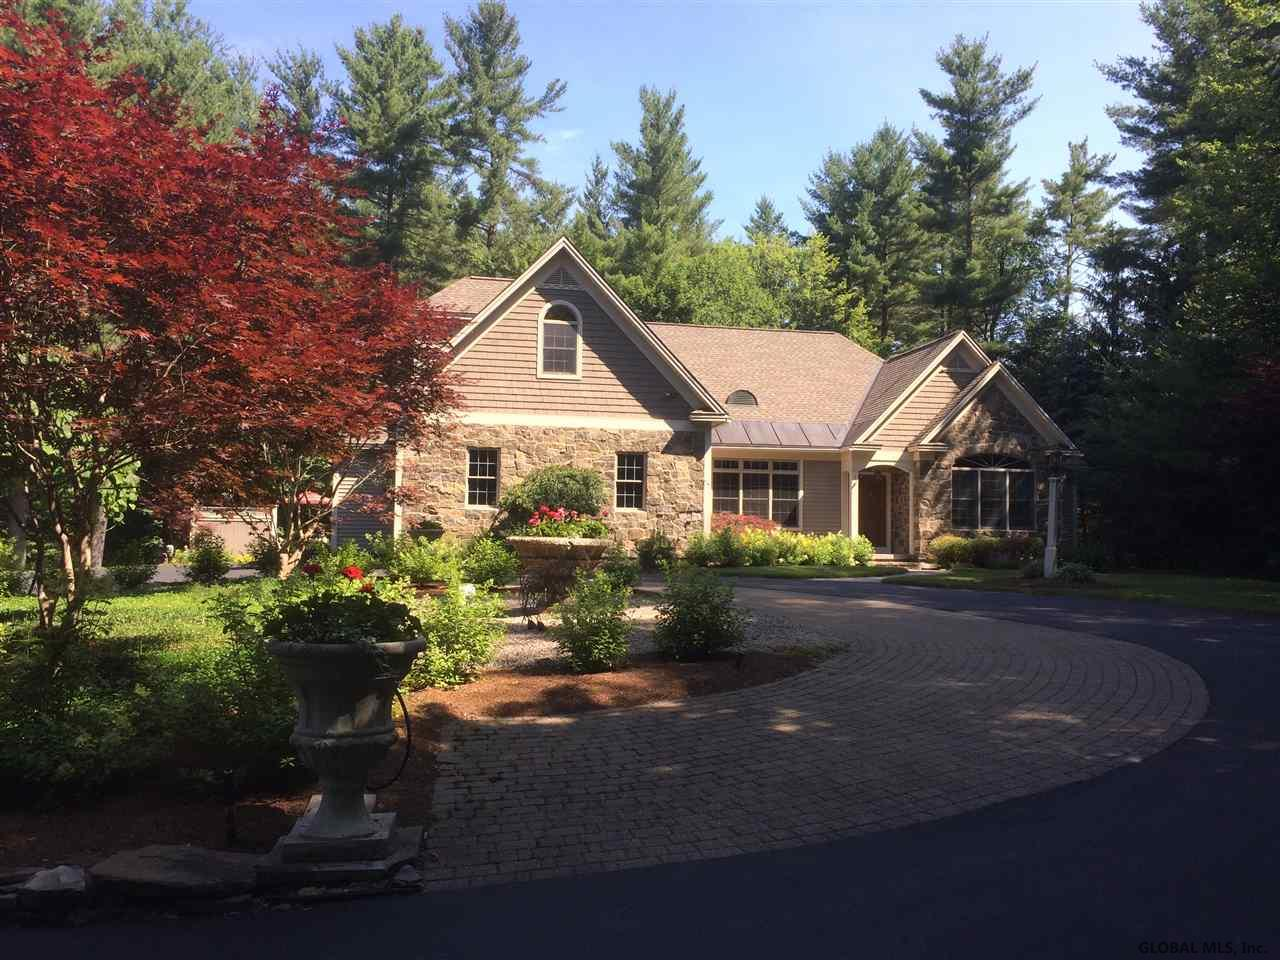 199 Old Schuylerville Rd In Saratoga Springs Ny Listed